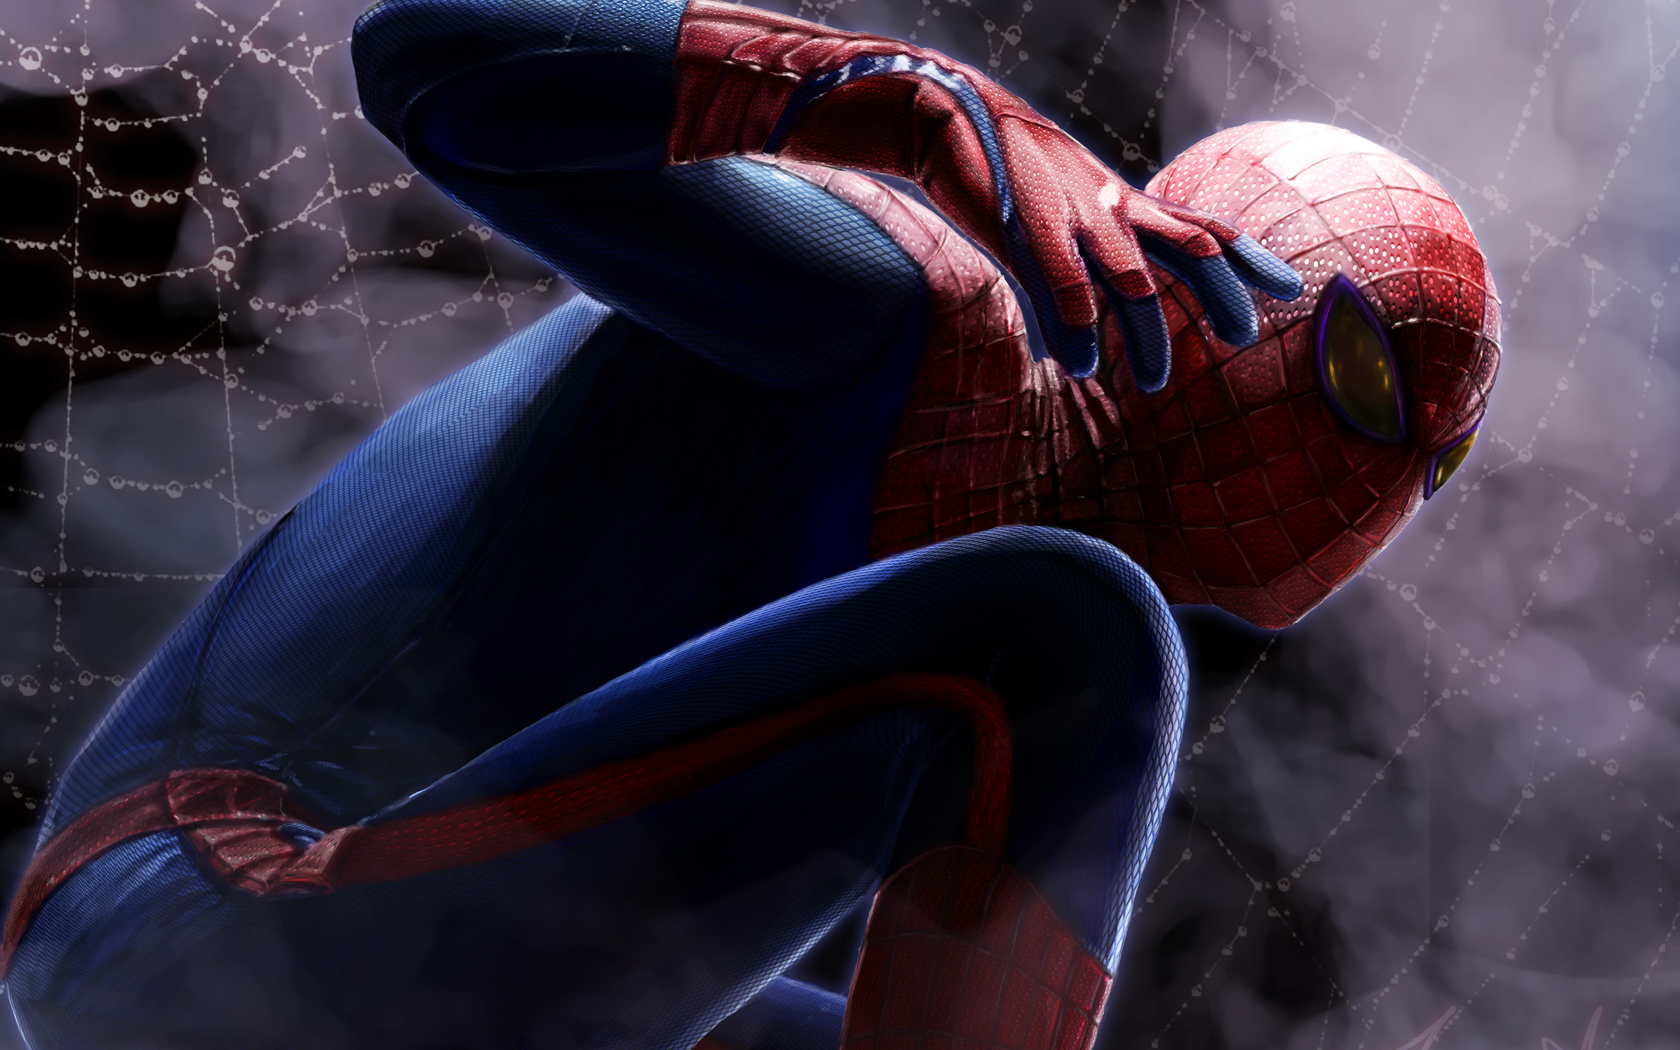 Spider Man Wallpaper superhero Spider Man HD Wallpapers Desktop 1680x1050